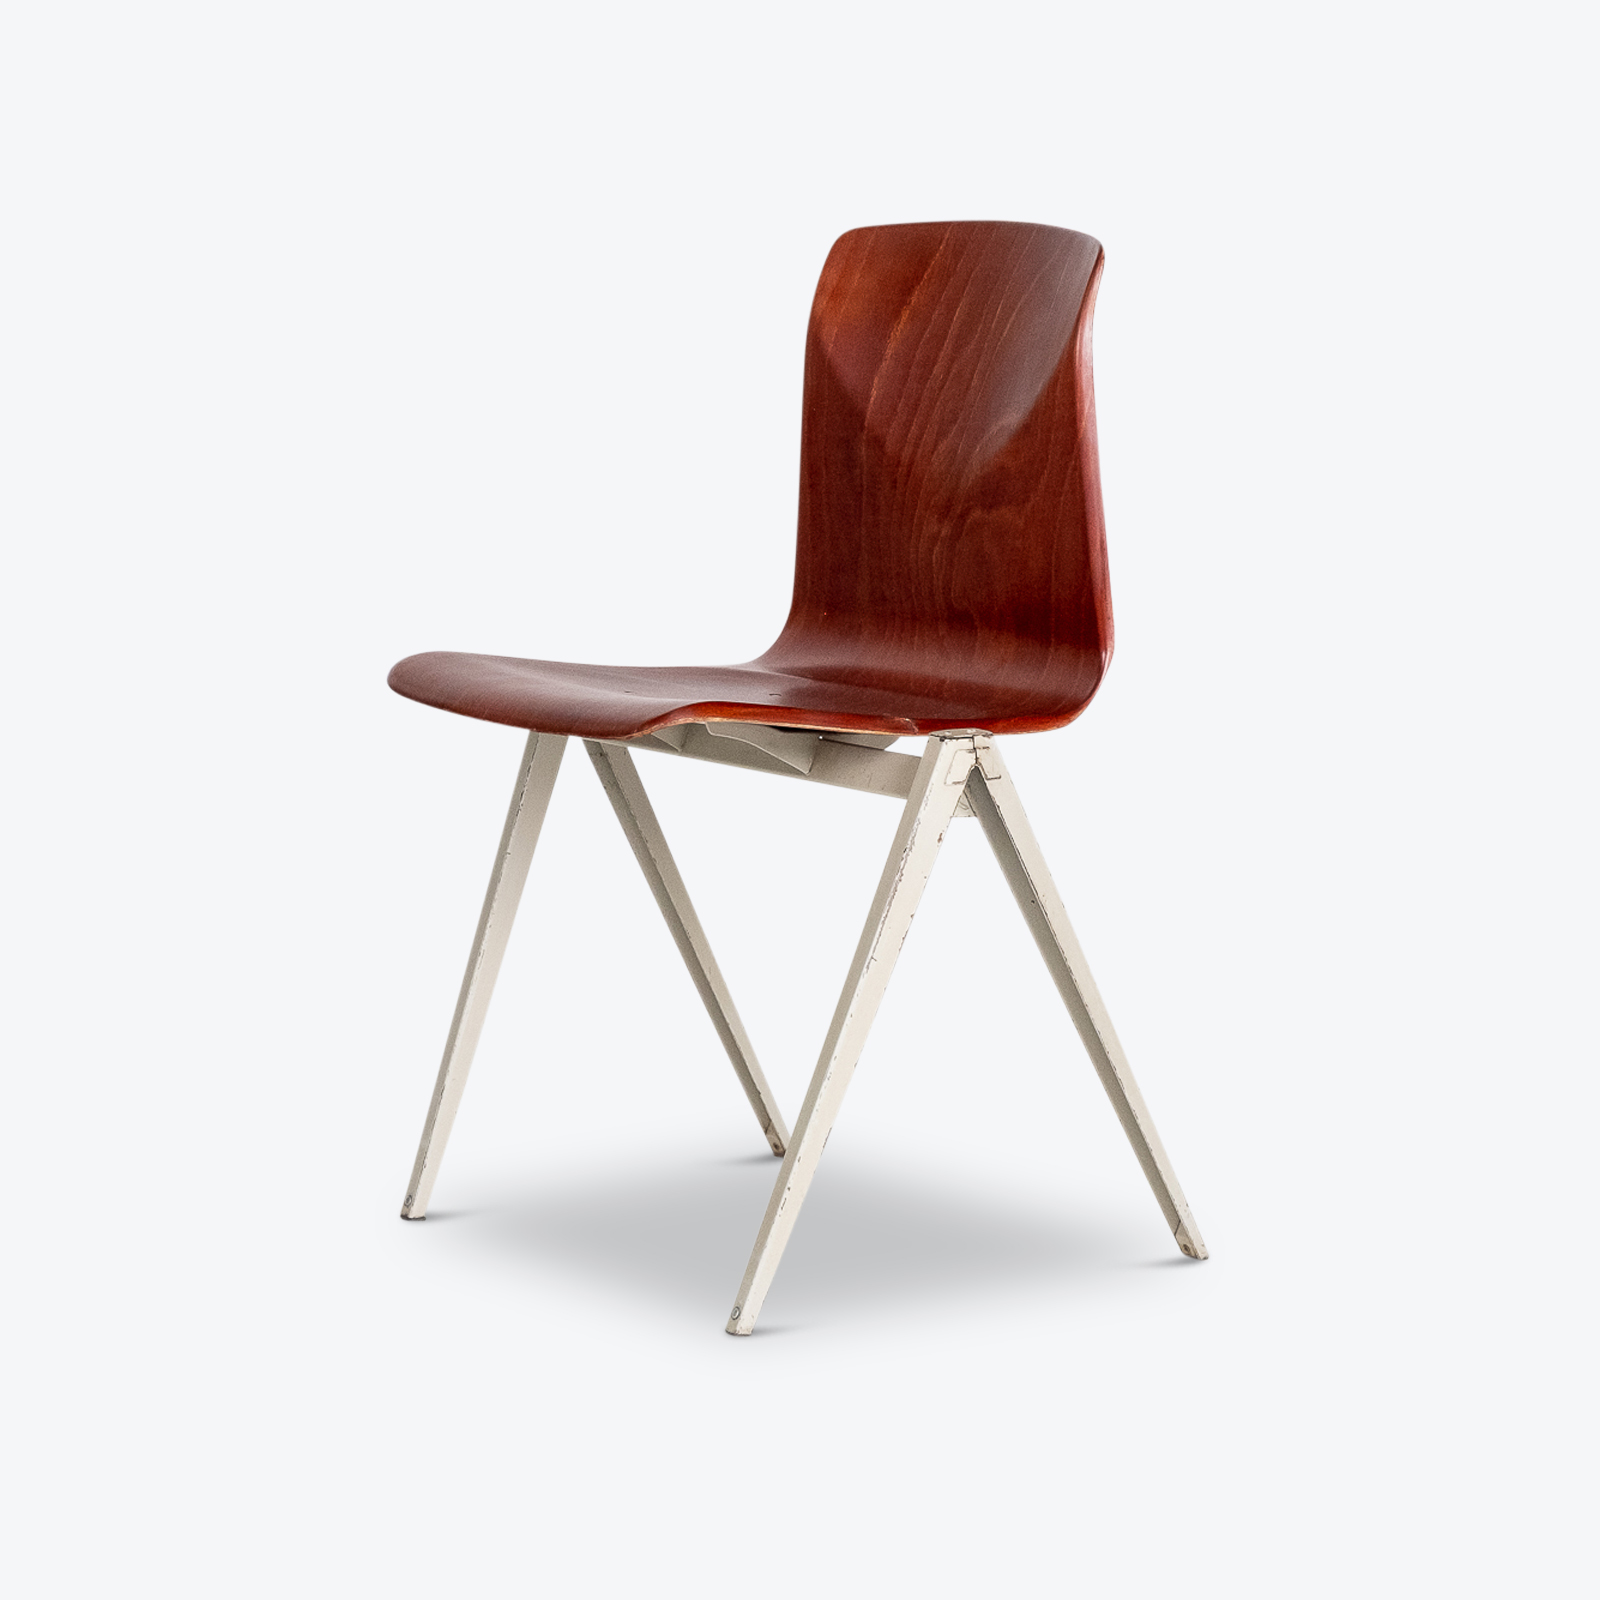 Model S22 Dining Chair By Galvanitas, 1960s, The Netherlands Hero